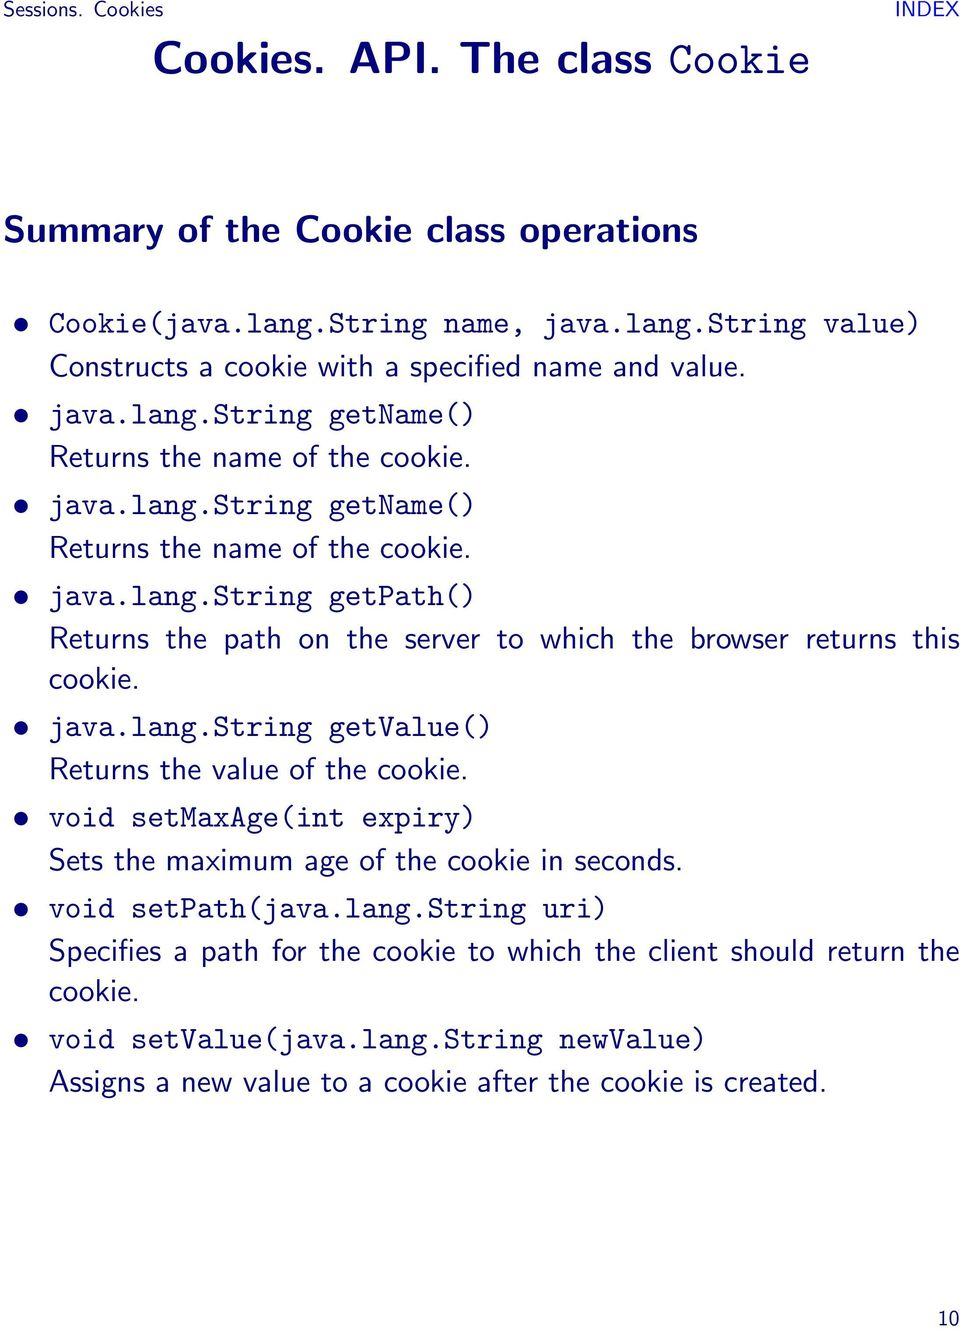 java.lang.string getvalue() Returns the value of the cookie. void setmaxage(int expiry) Sets the maximum age of the cookie in seconds. void setpath(java.lang.string uri) Specifies a path for the cookie to which the client should return the cookie.